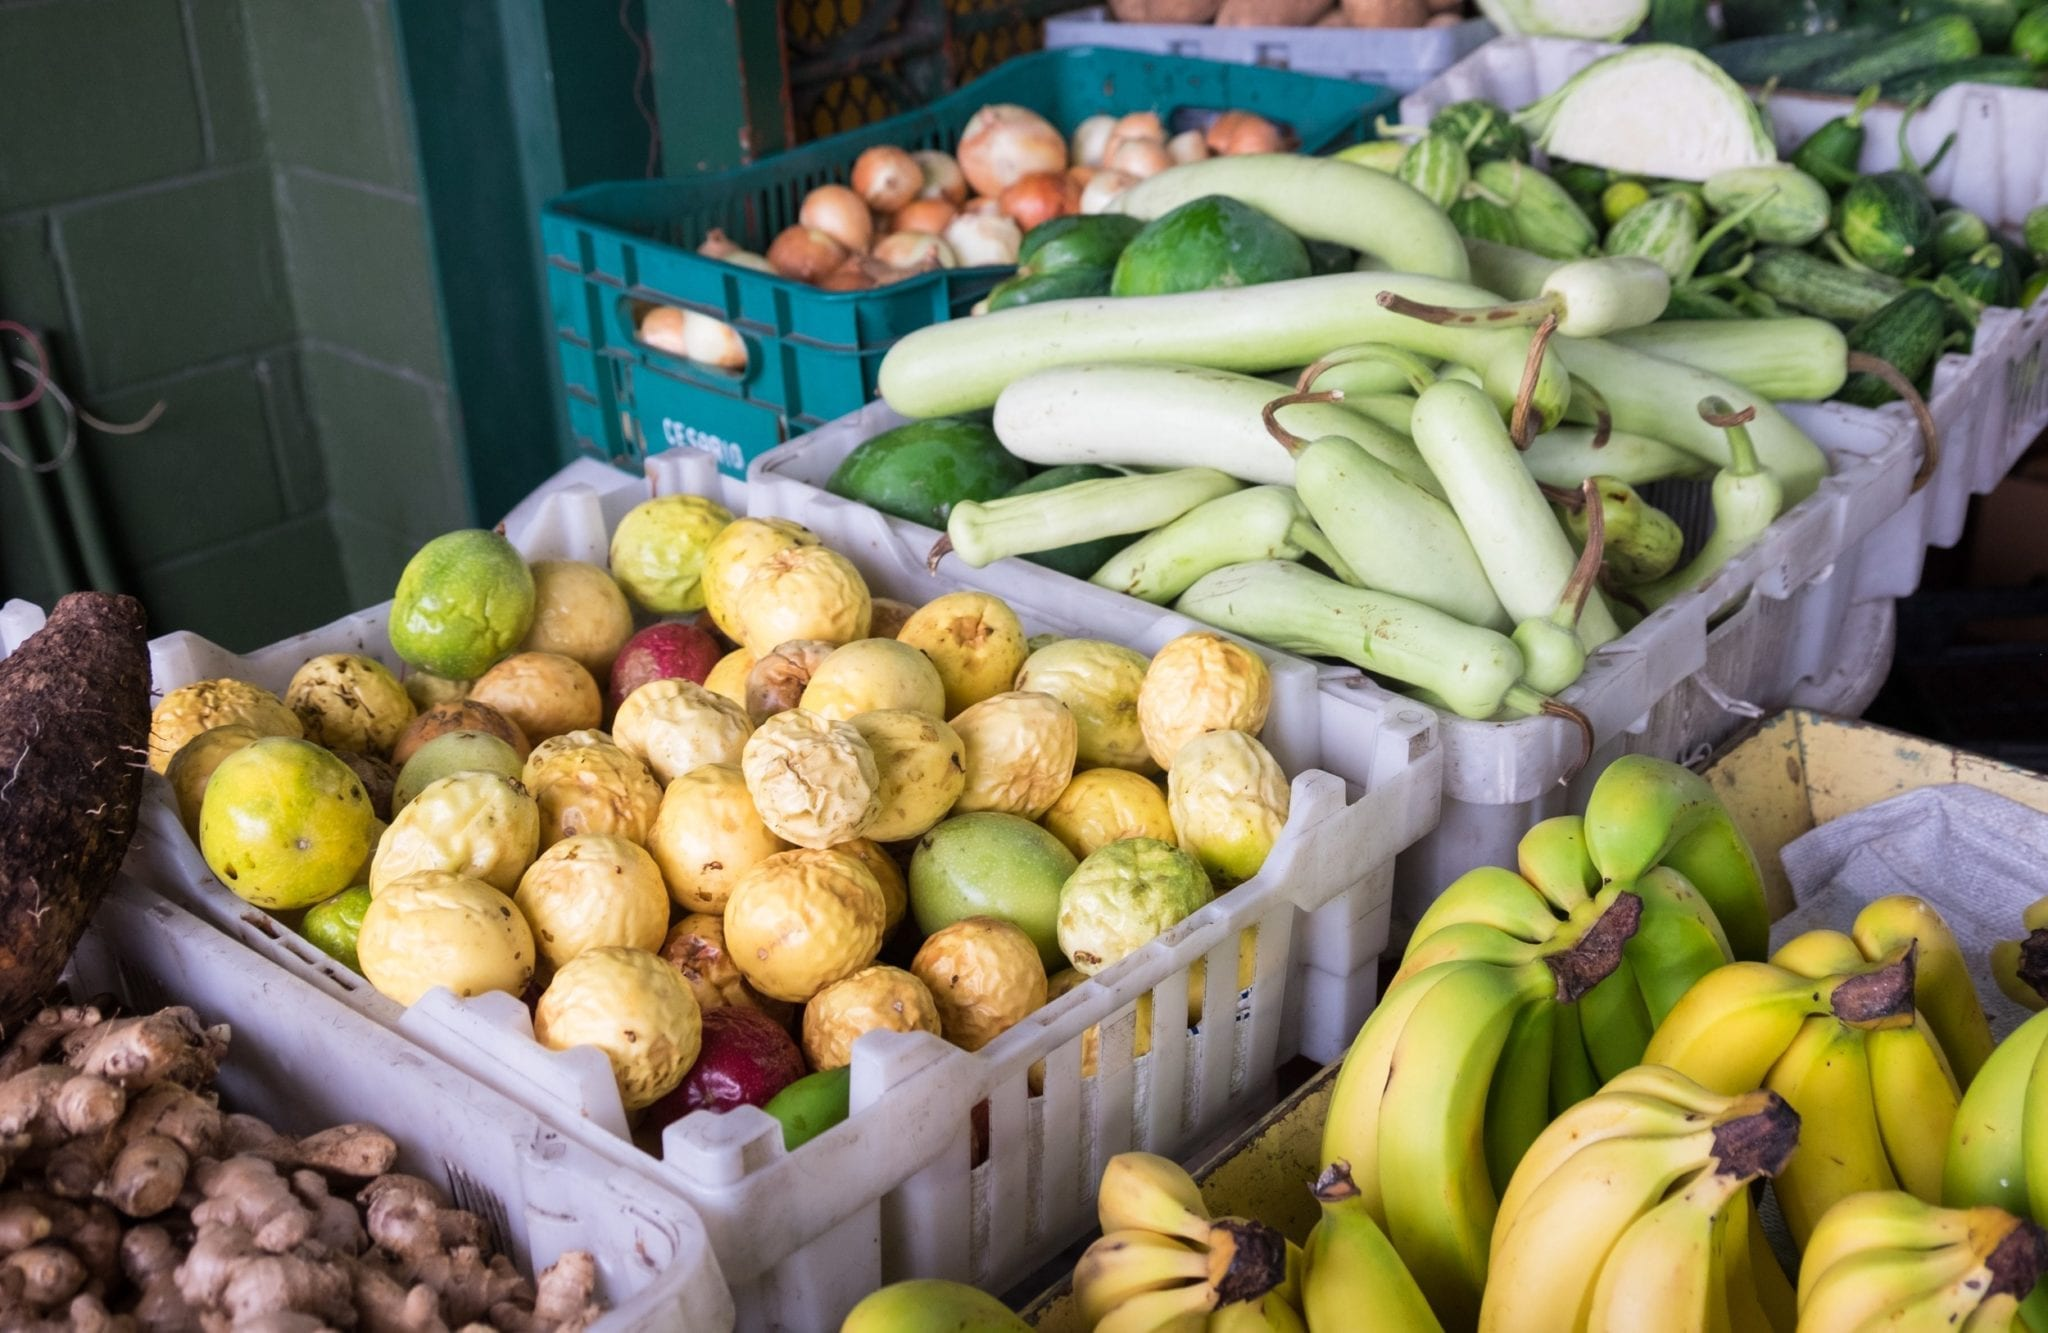 Fruits and vegetables piled up in purple crates in Antigua. Bananas, ginger, onions, and some unrecognizable green and yellow vegetables.